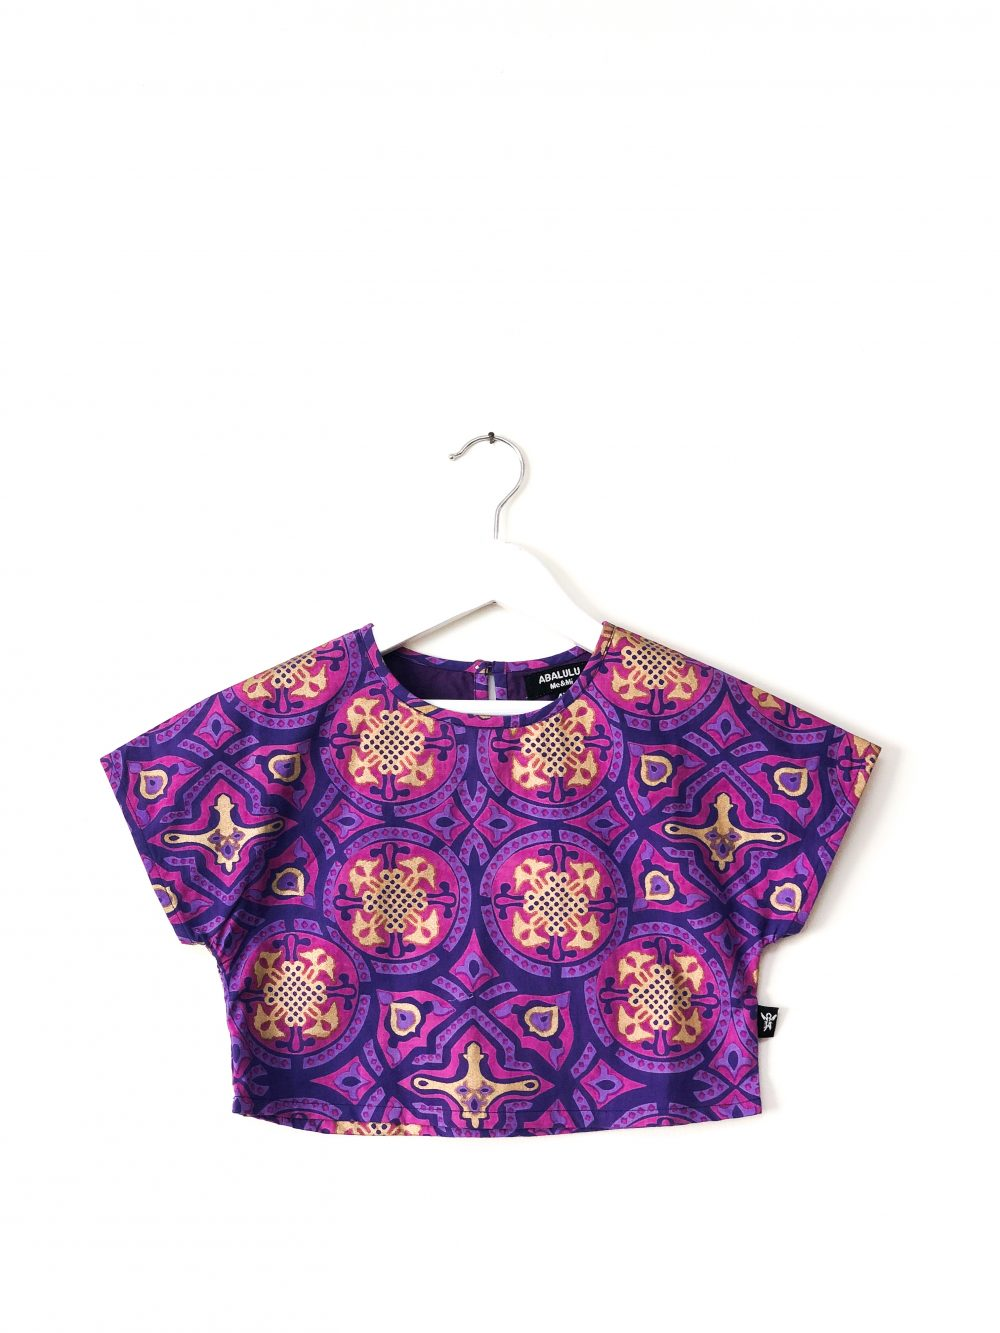 arabesque shirt for girls